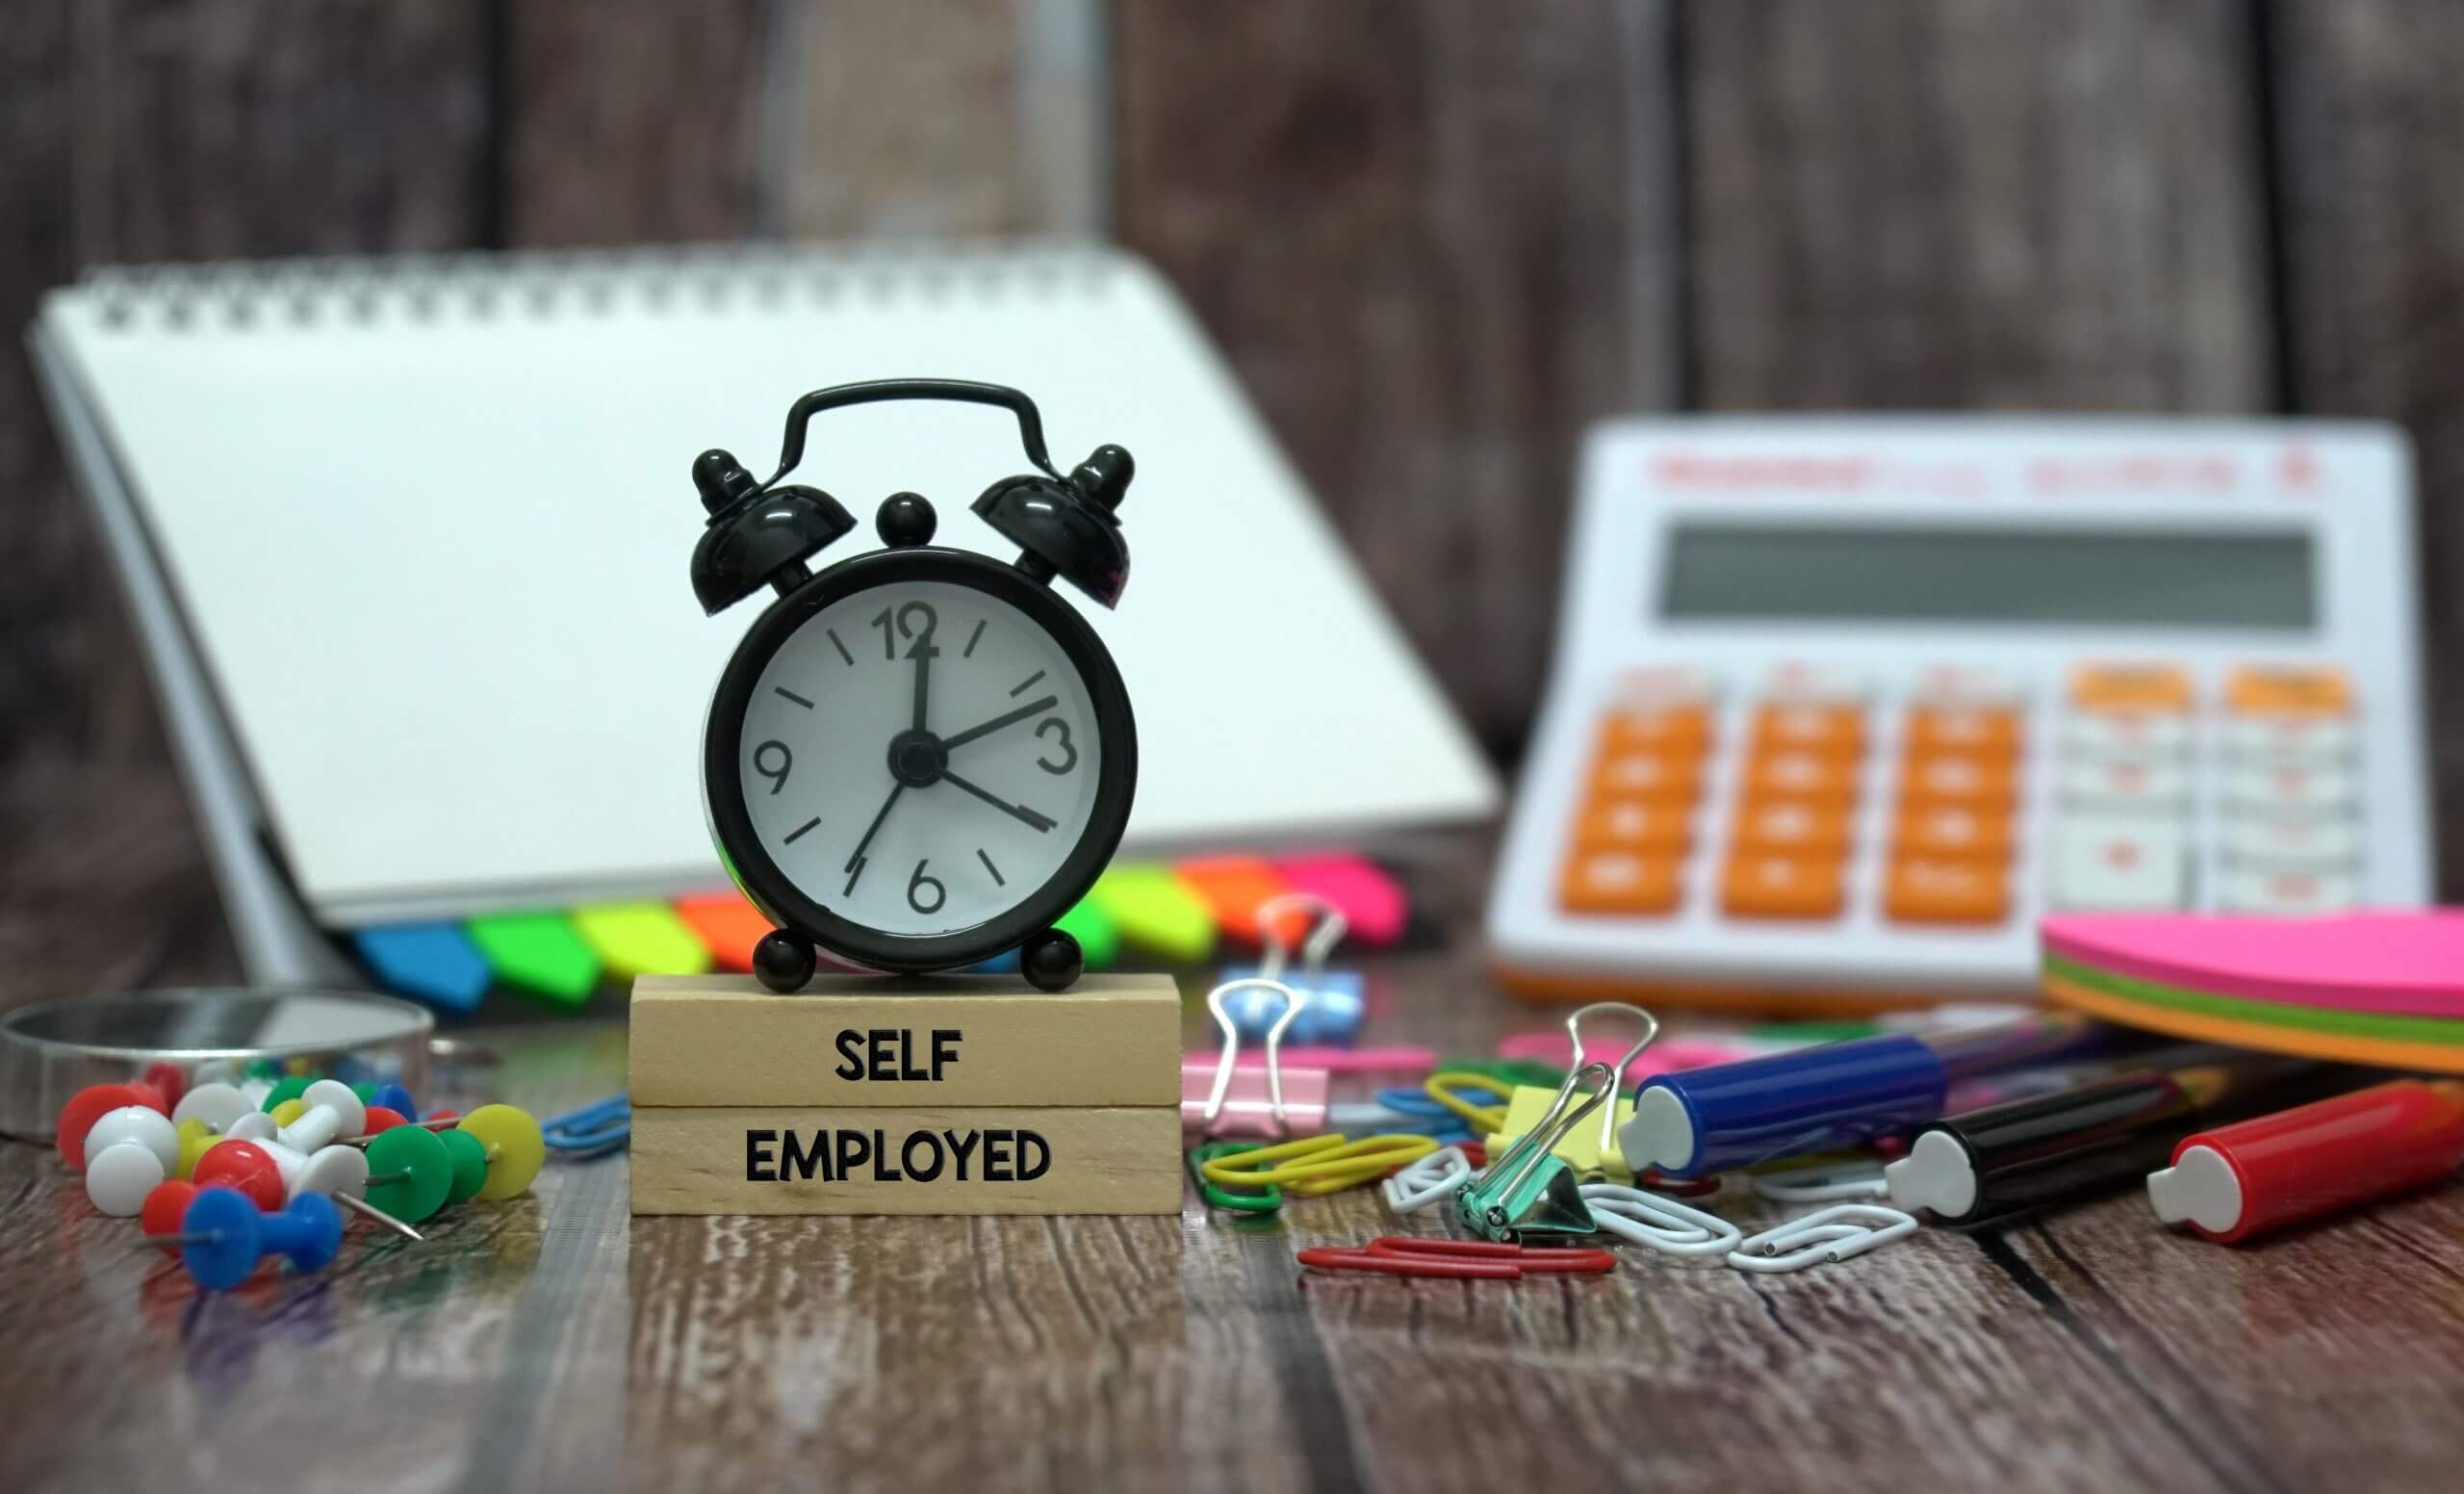 Self-Employment Income Support Scheme (SEISS) (updated 25th March 2021) How to claim 4th and 5th payment!